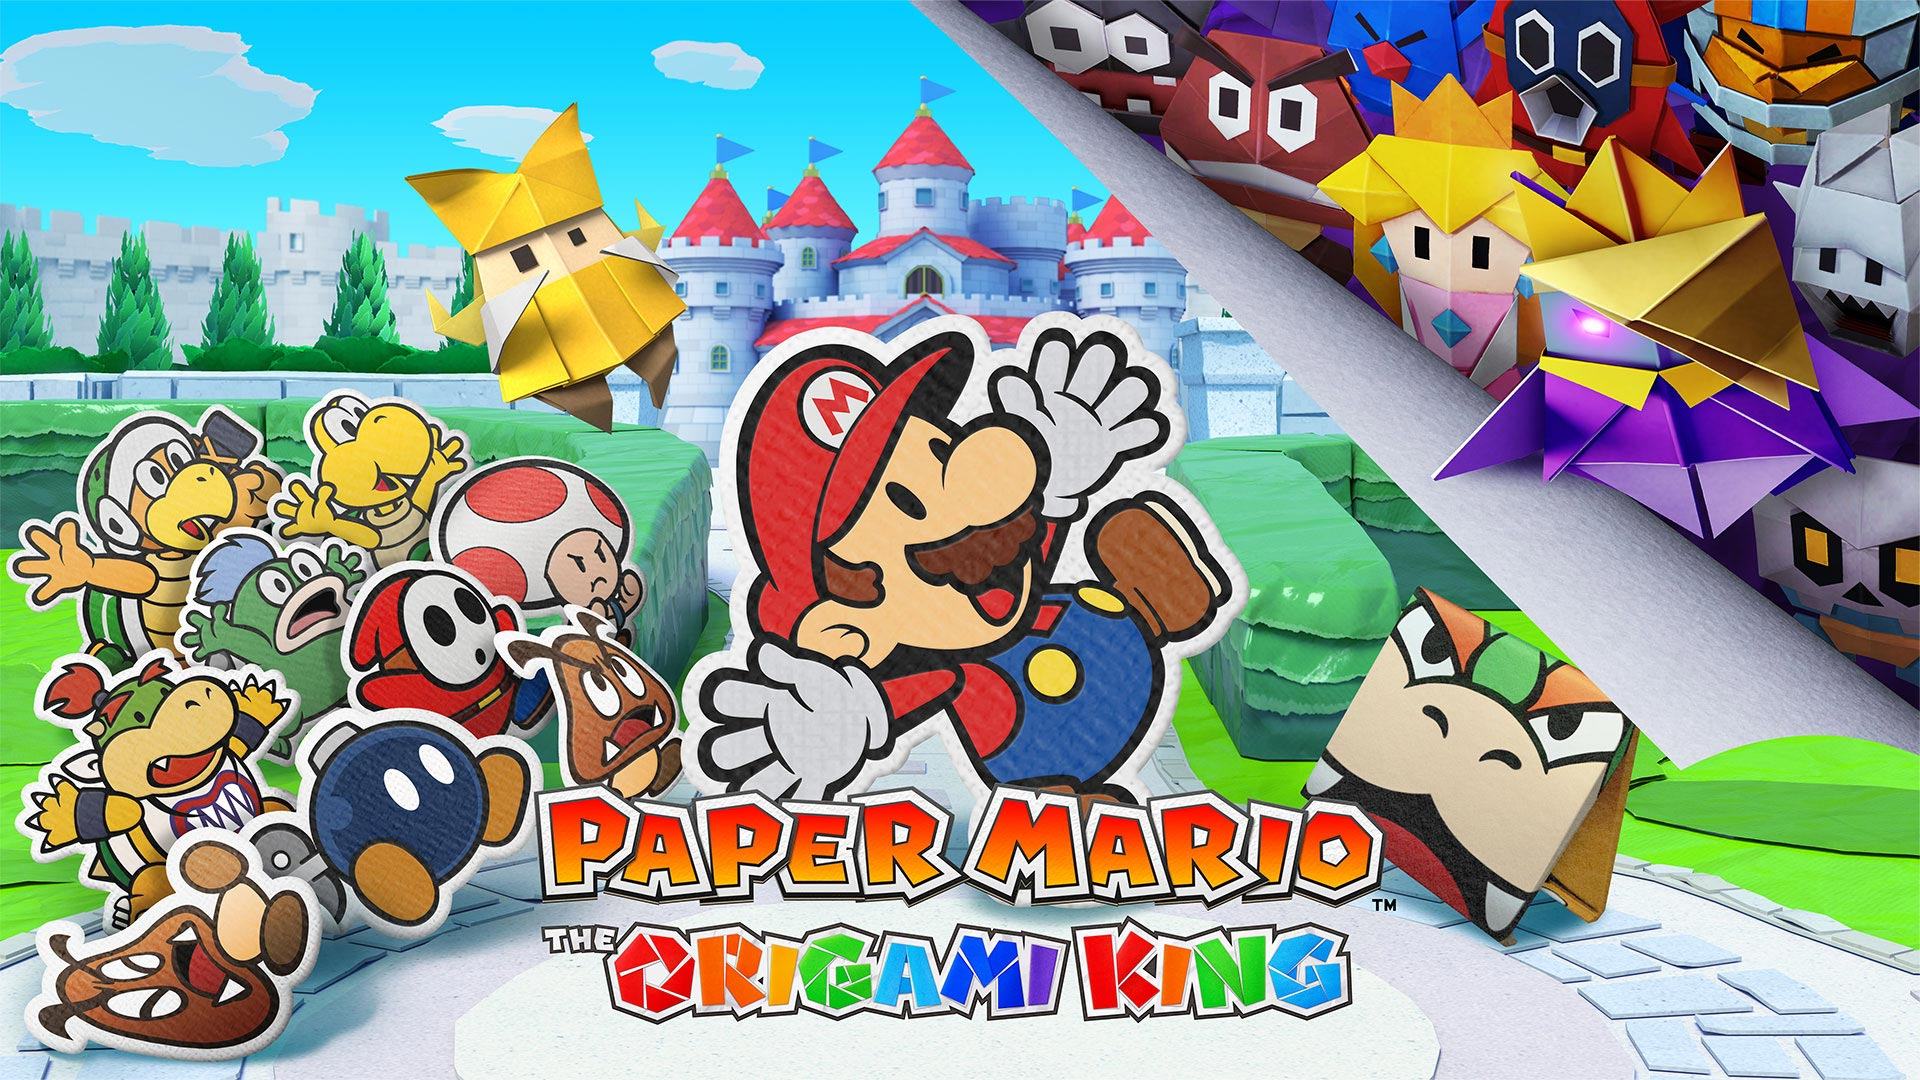 Paper Mario: The Origami King (Video Game Review)